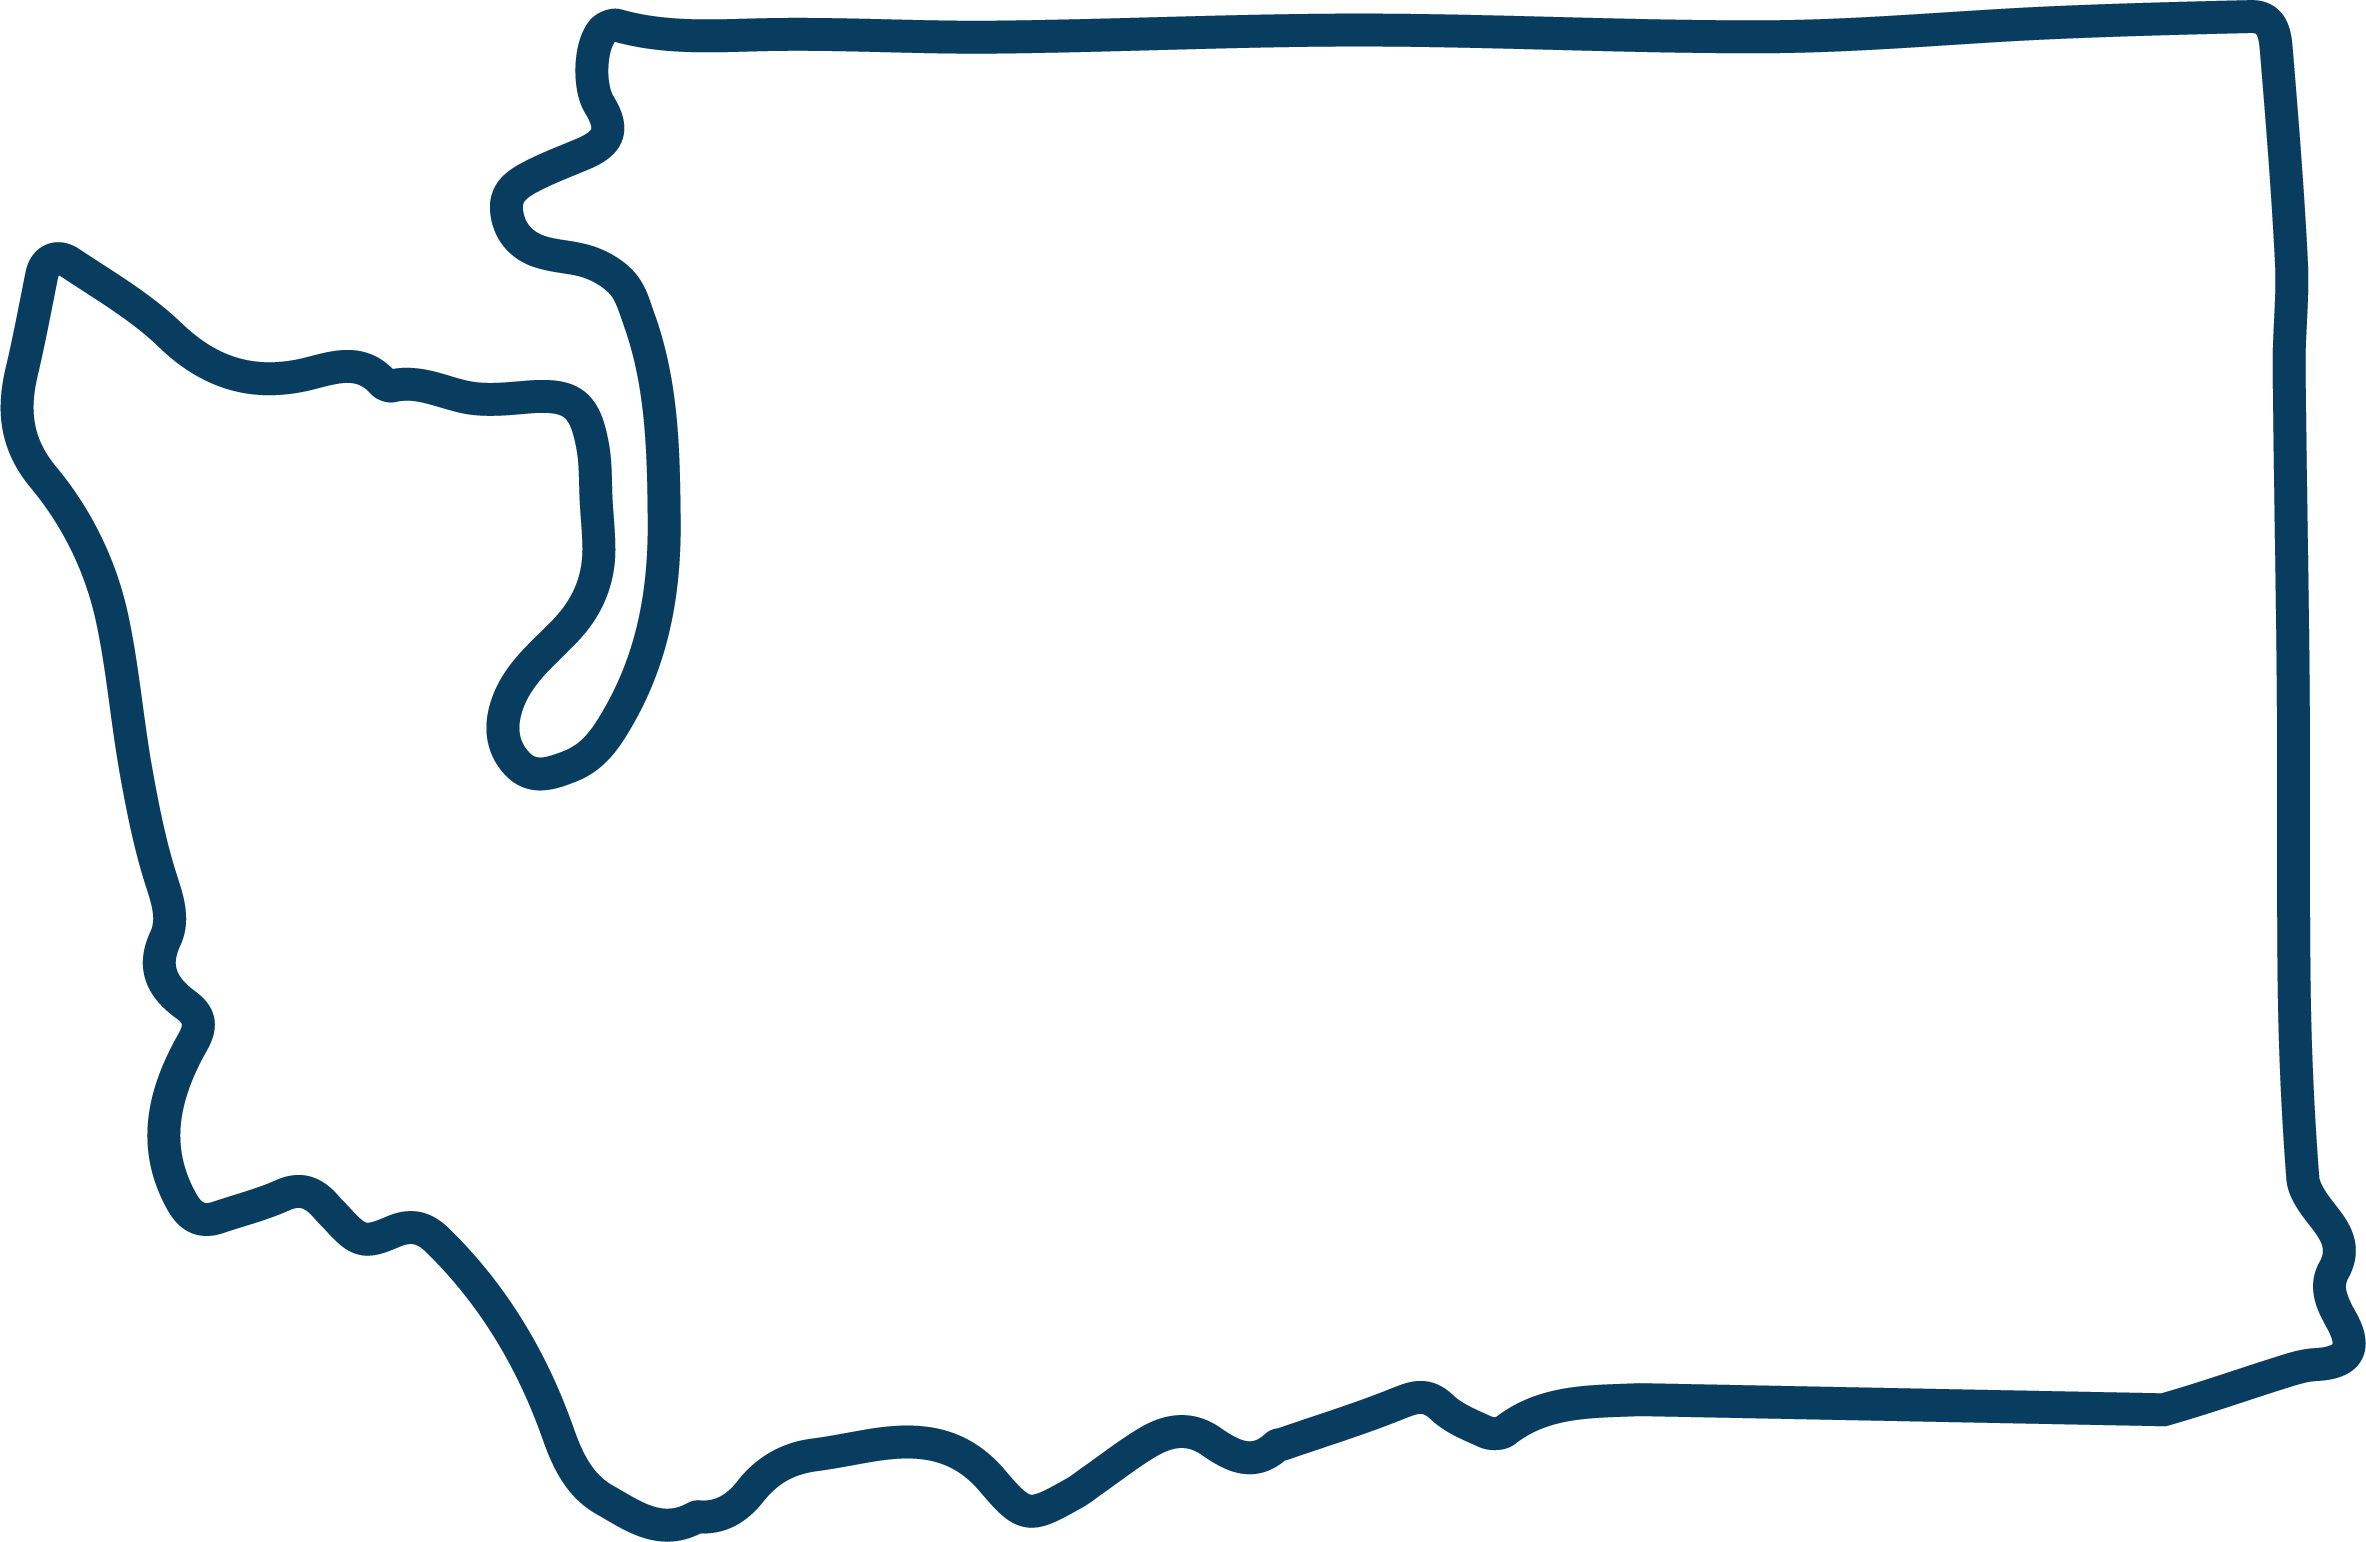 Washington state code backgorund clipart vector royalty free Washington State Outline Blue2 Clipart - Full Size Clipart ... vector royalty free